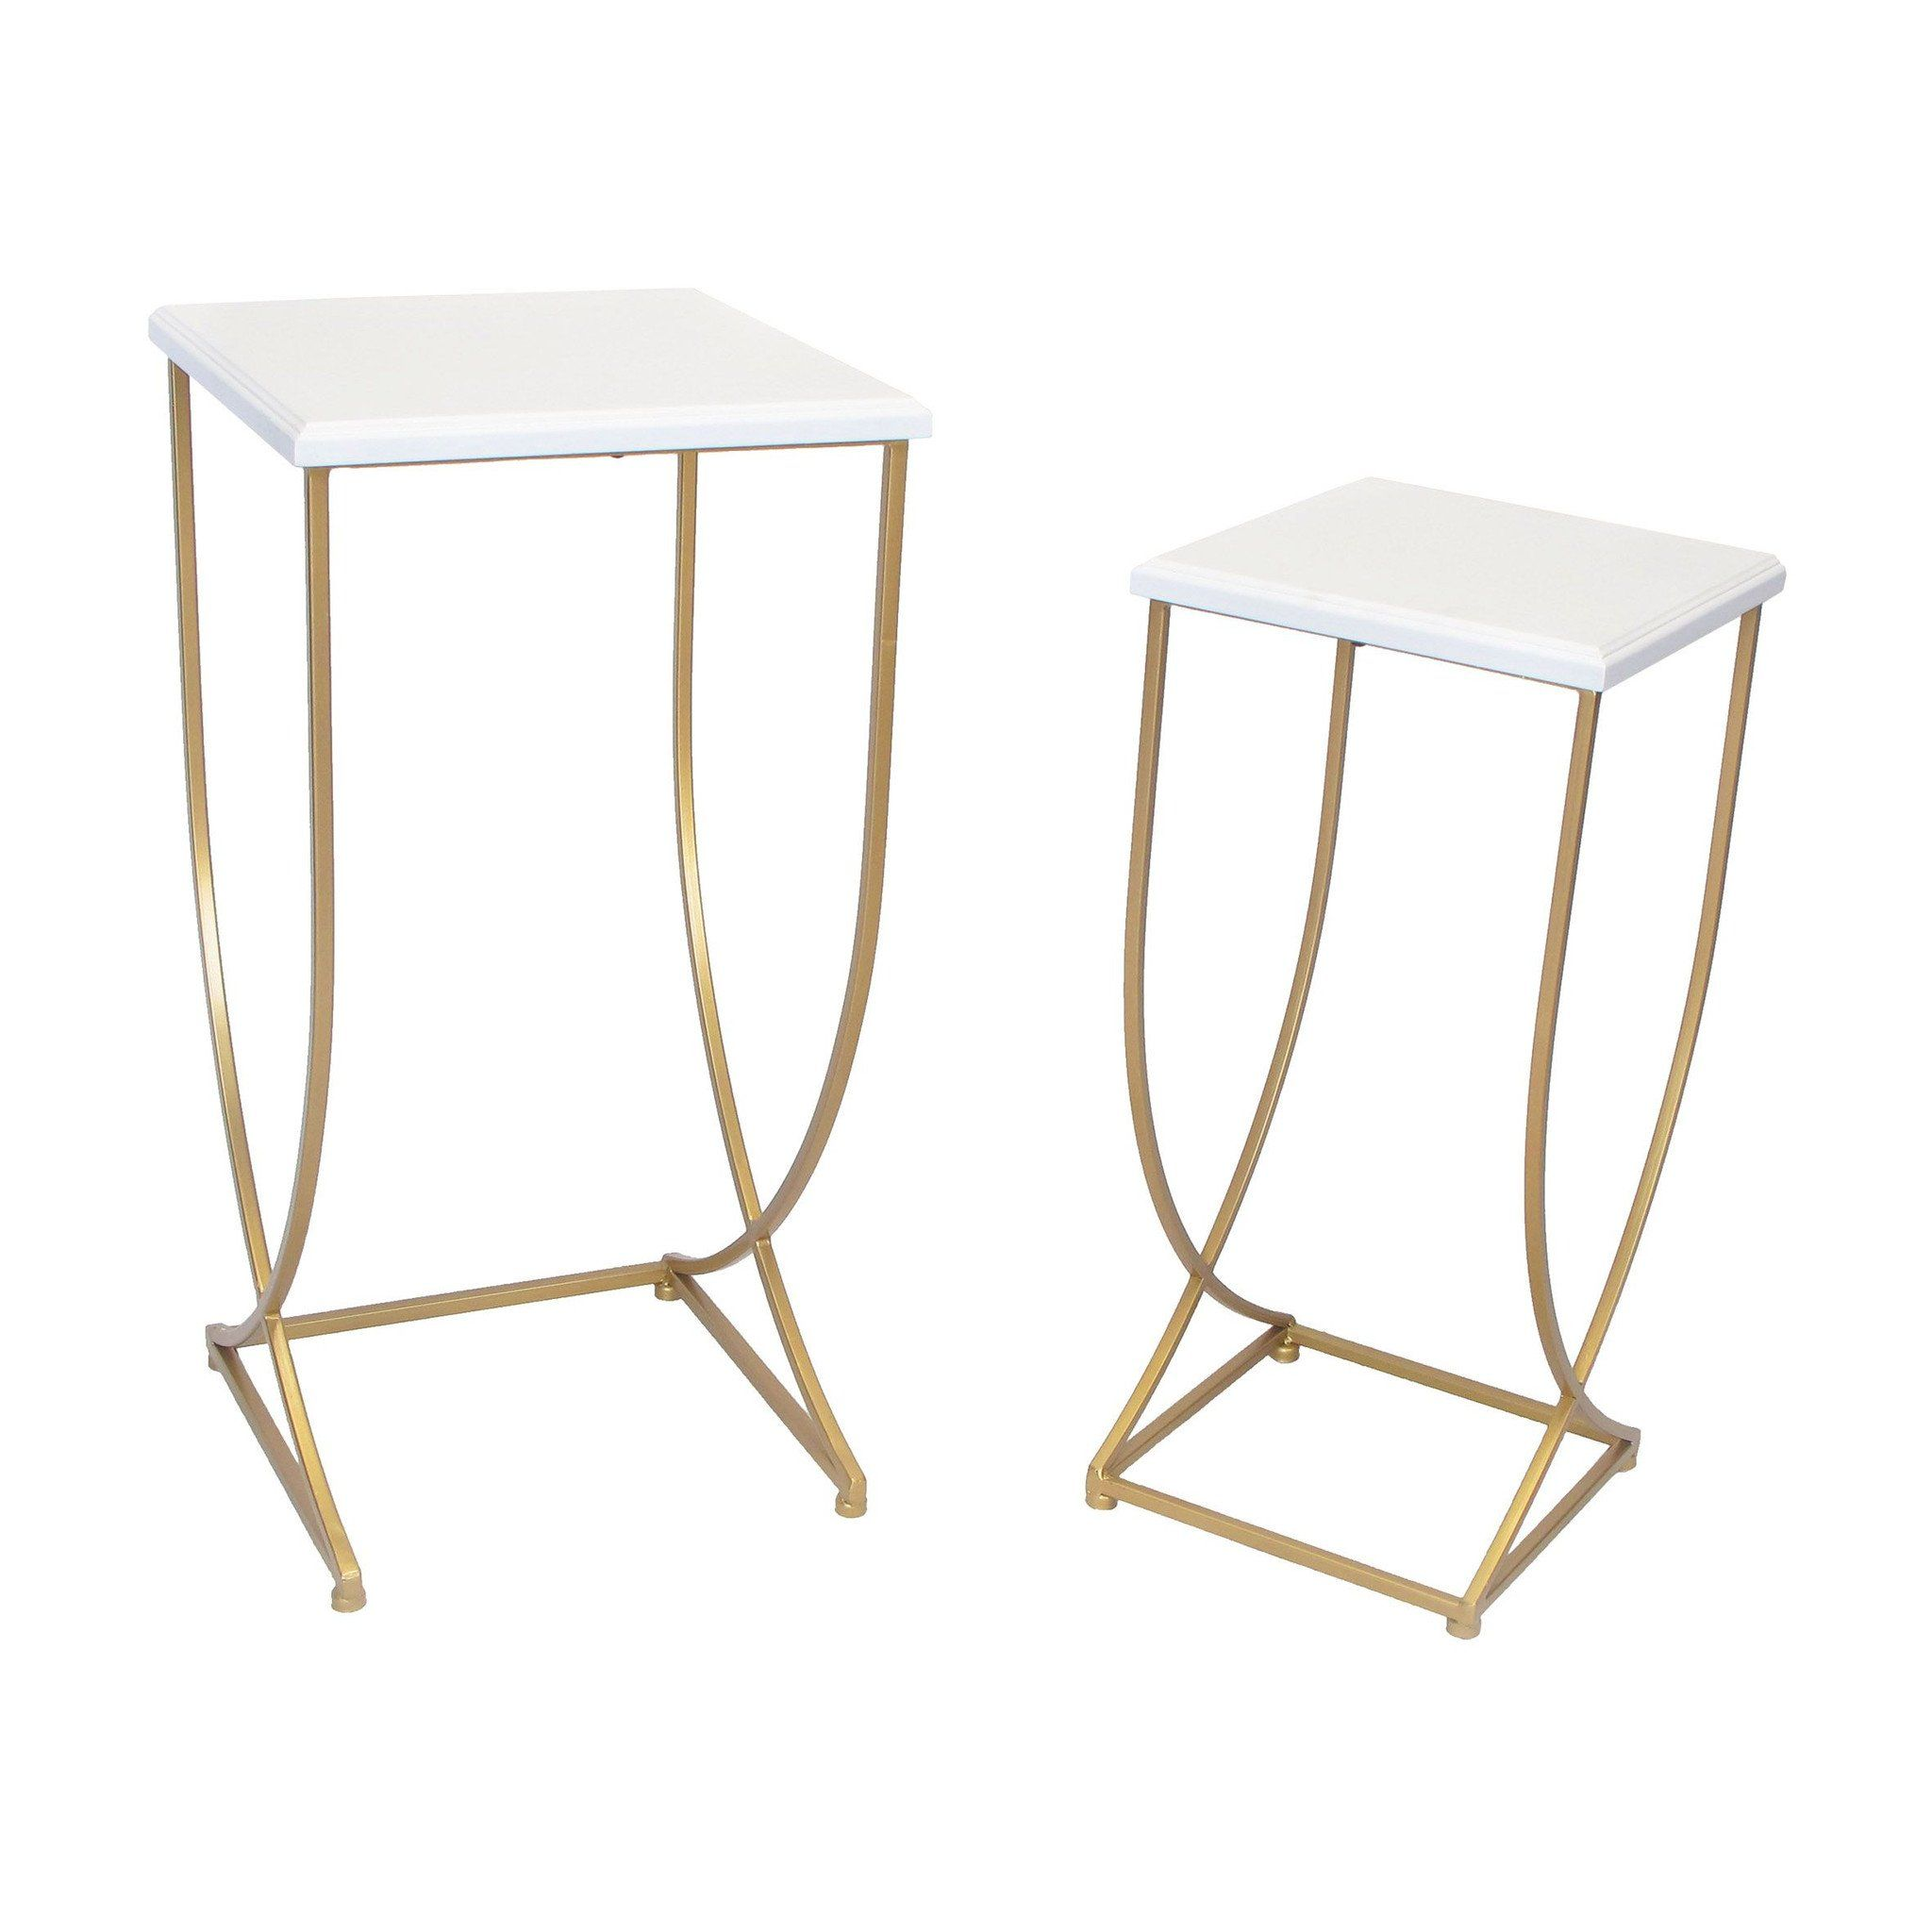 gold metal tall nesting side table set with white top everything room essentials hairpin accent retro kitchen furniture yellow end folding garden round dining nautical chairs